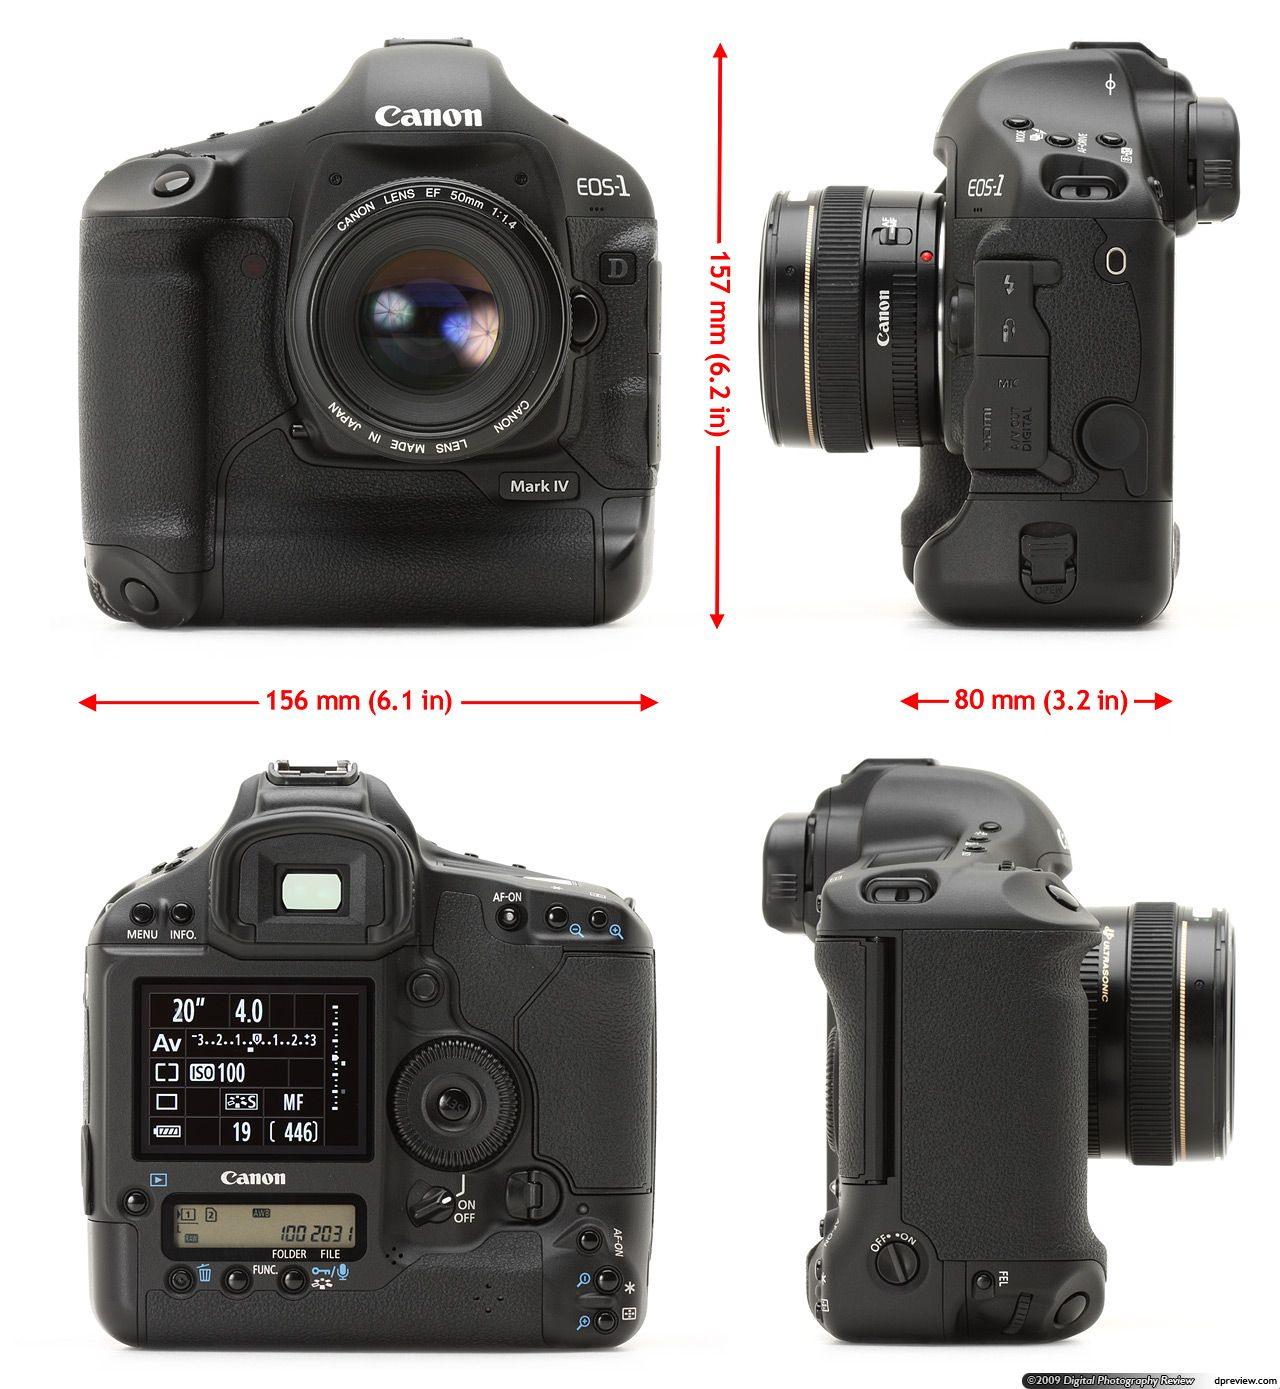 Canon Eos 1d Mark Iv Review Digital Photography Review Photography Reviews Eos Canon Eos